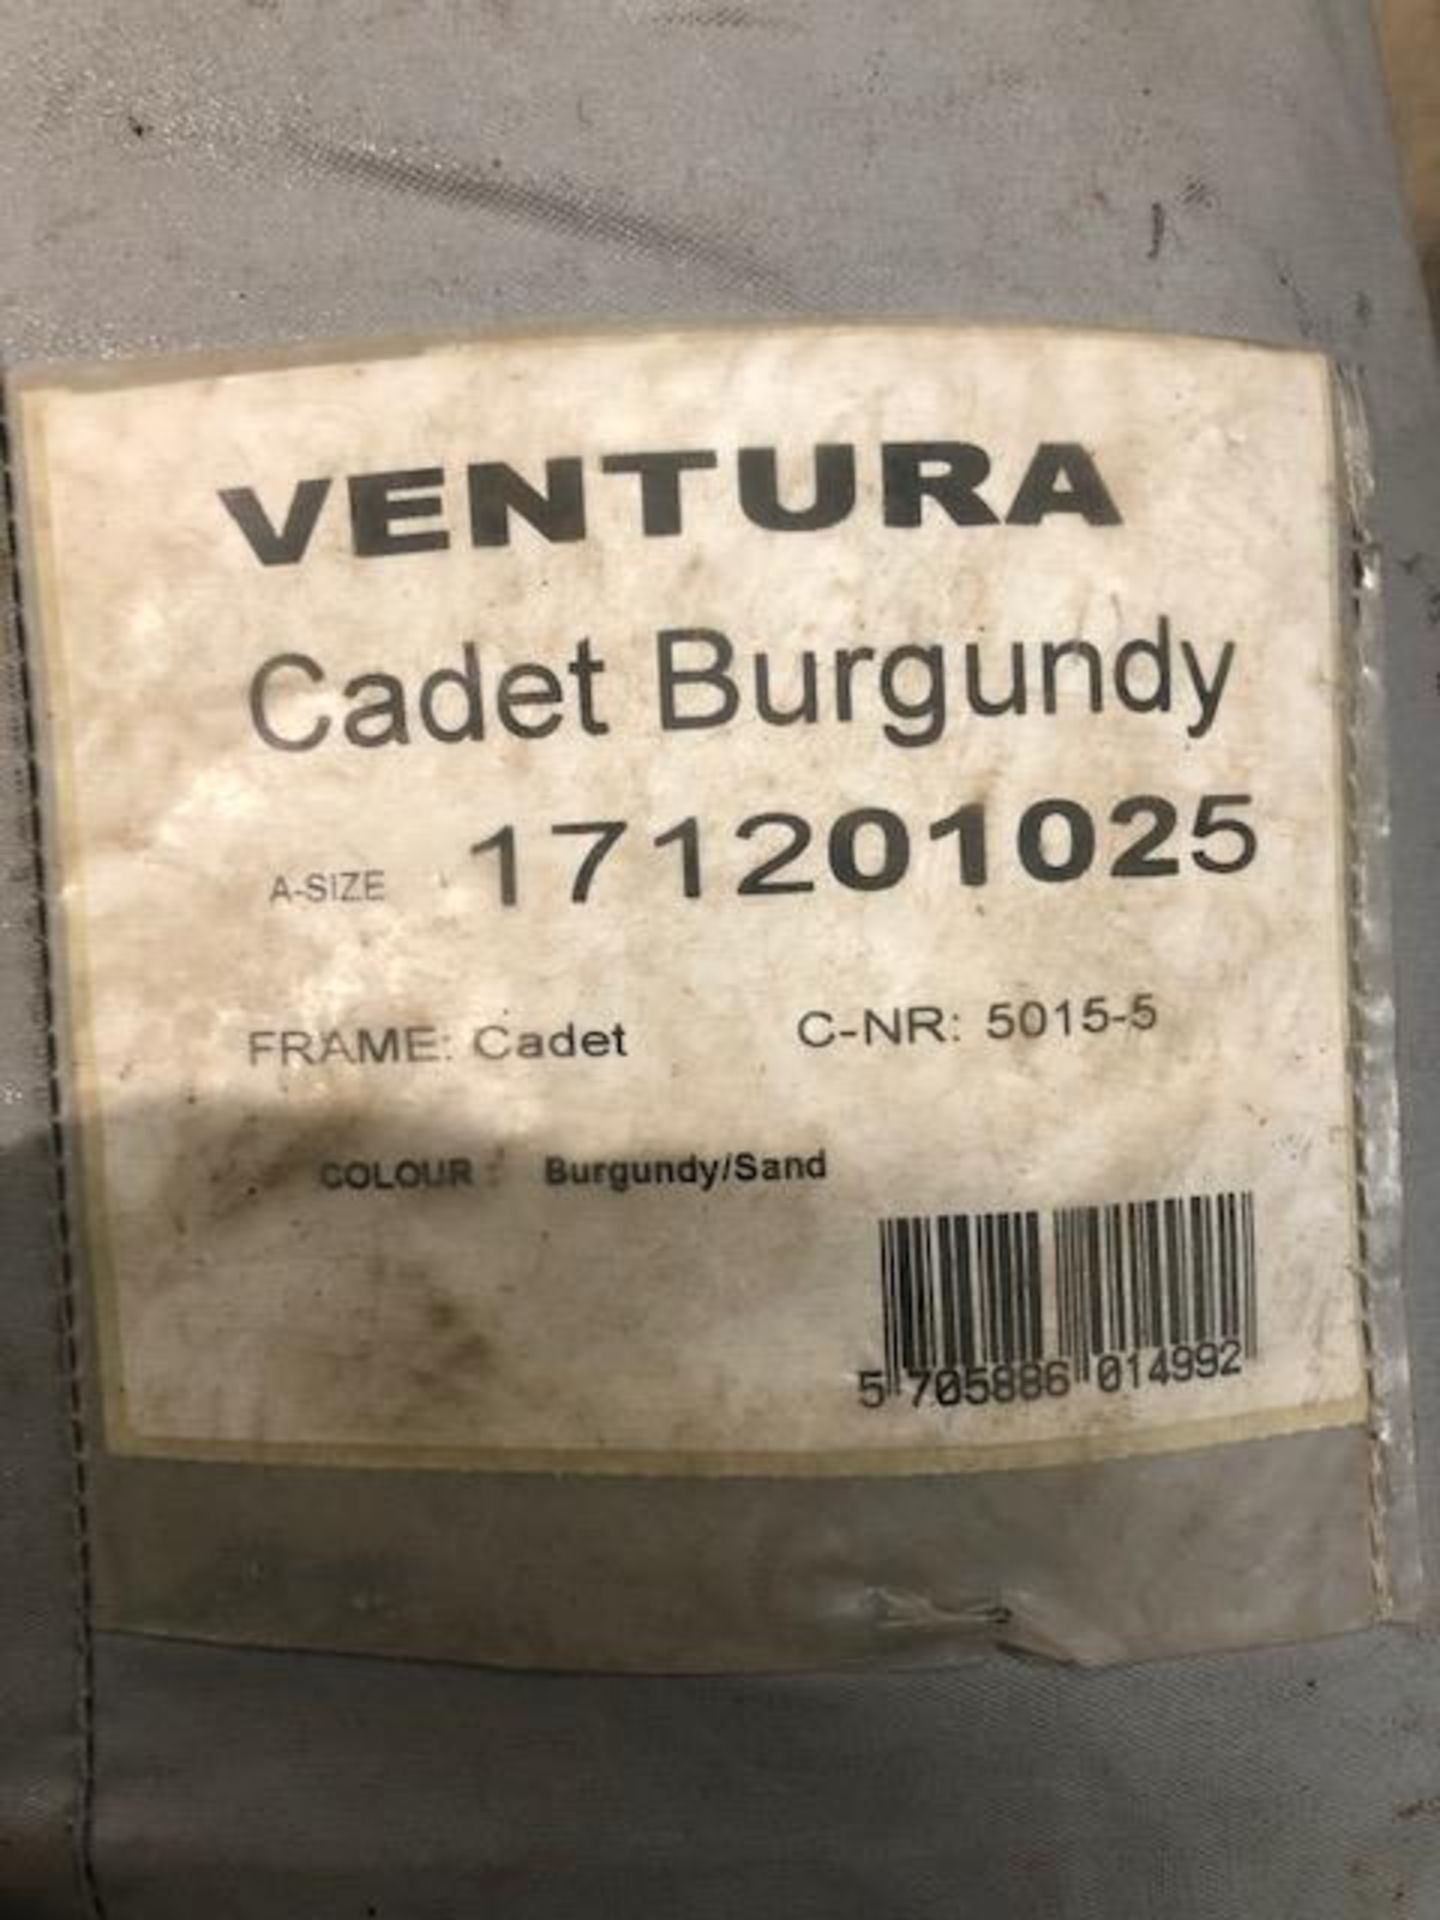 A VENTURA CADET W260 PORCH AWNING (two bags), colour burgundy/sand. - Image 2 of 2